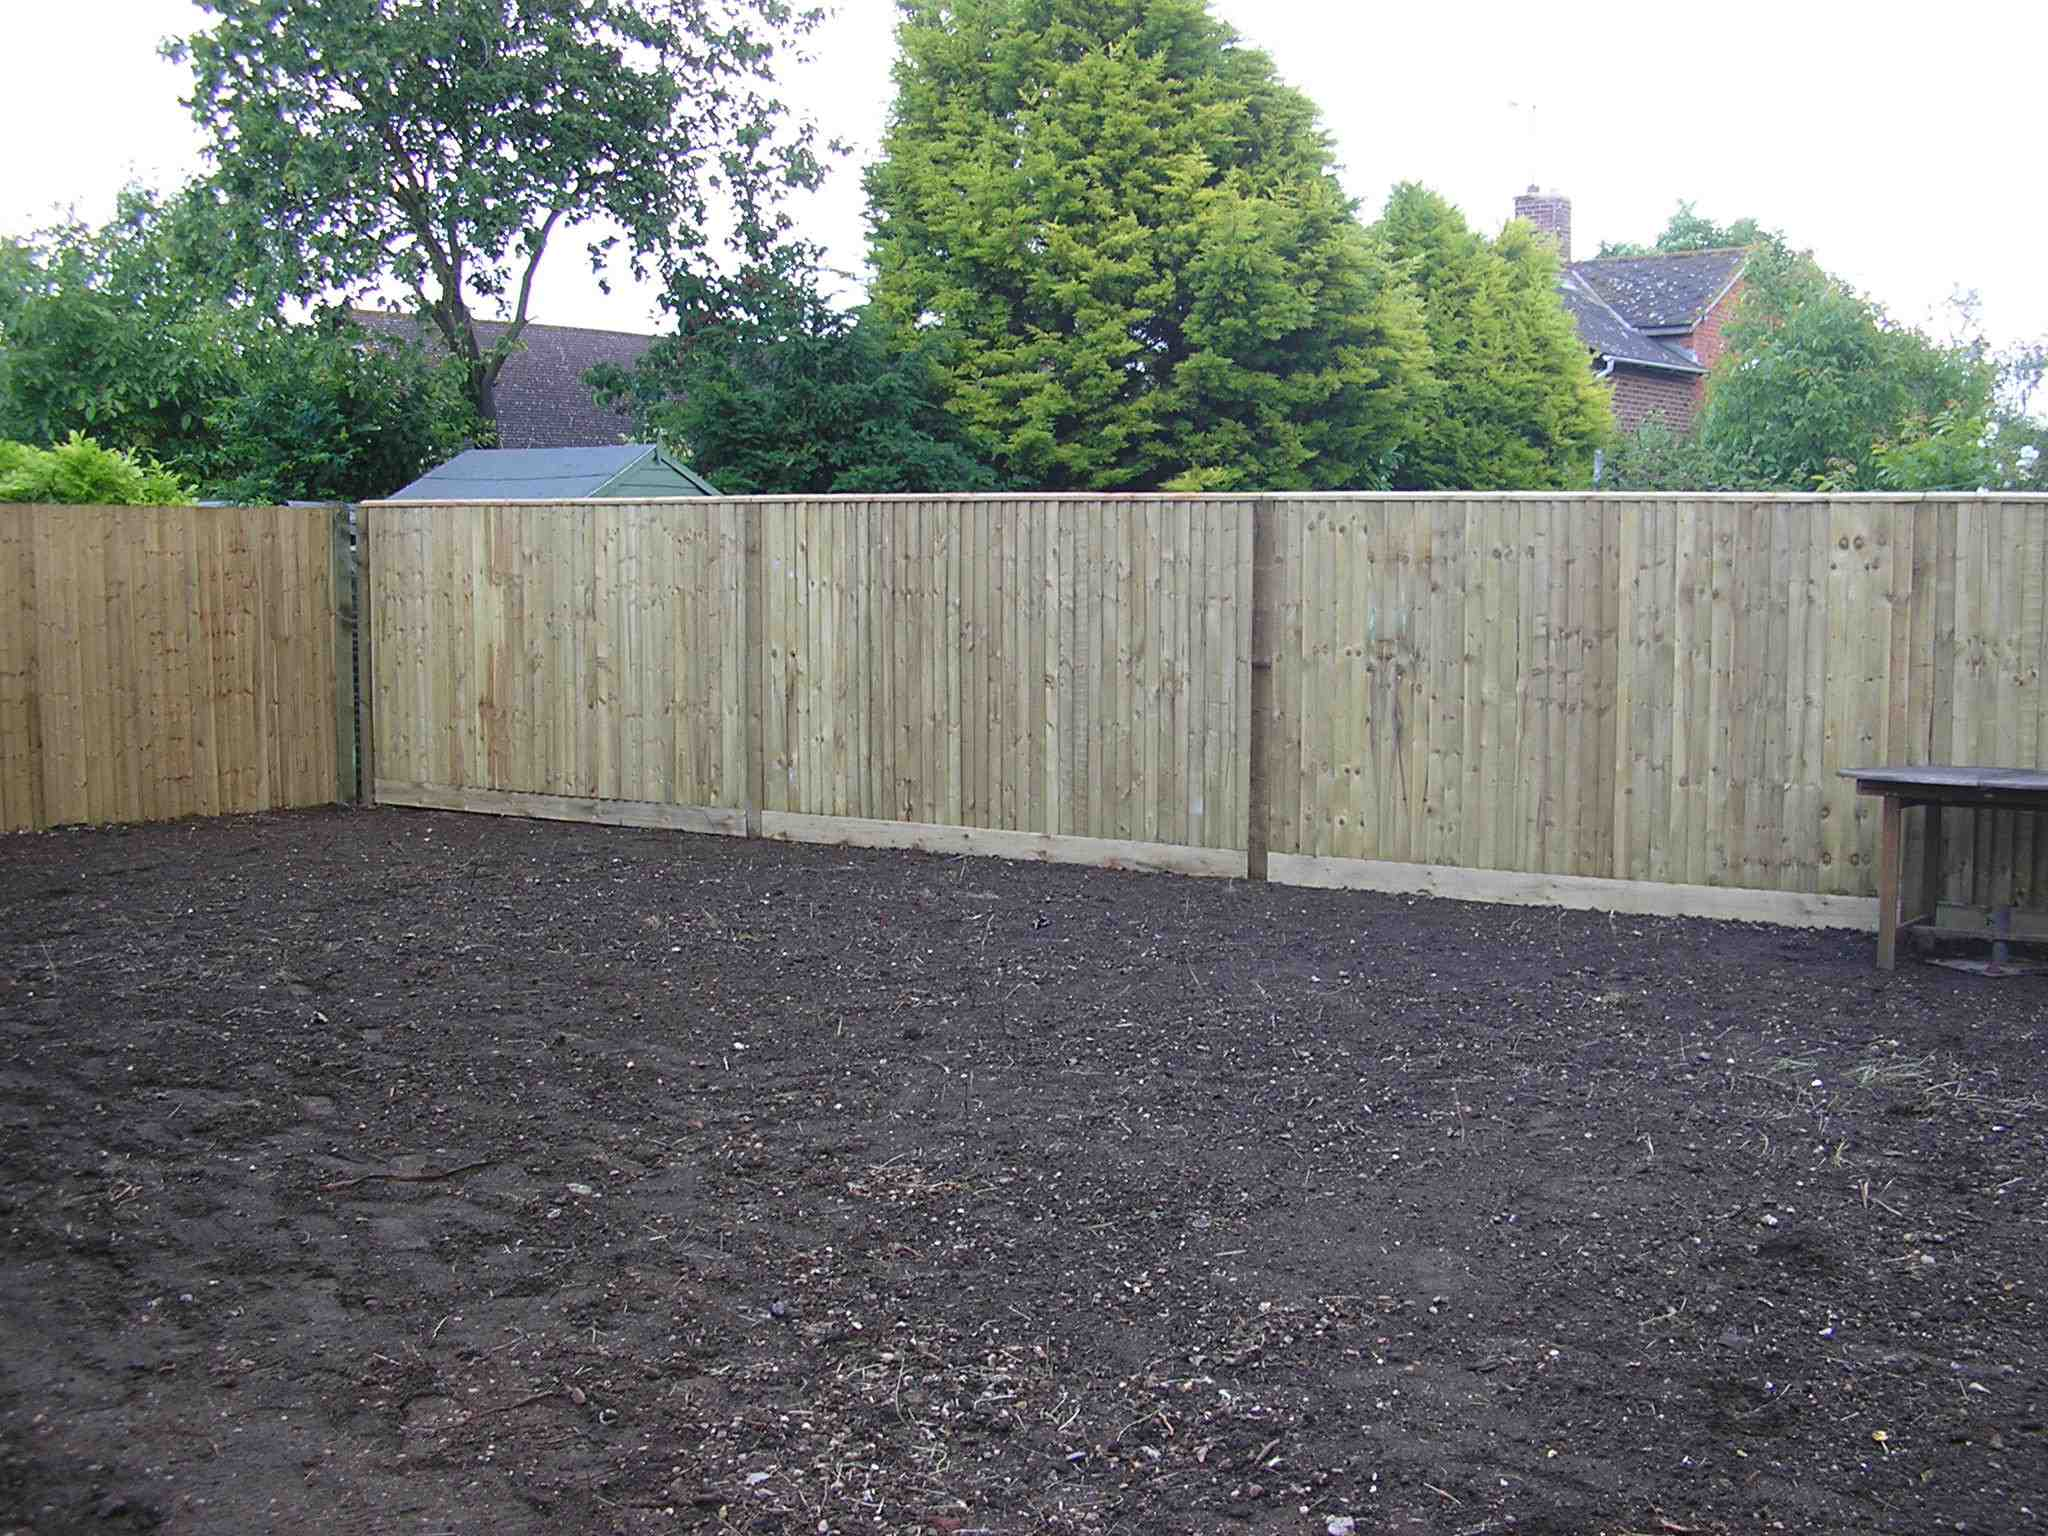 Portfolio eamples of our new fencing and gates company service in Derby 14